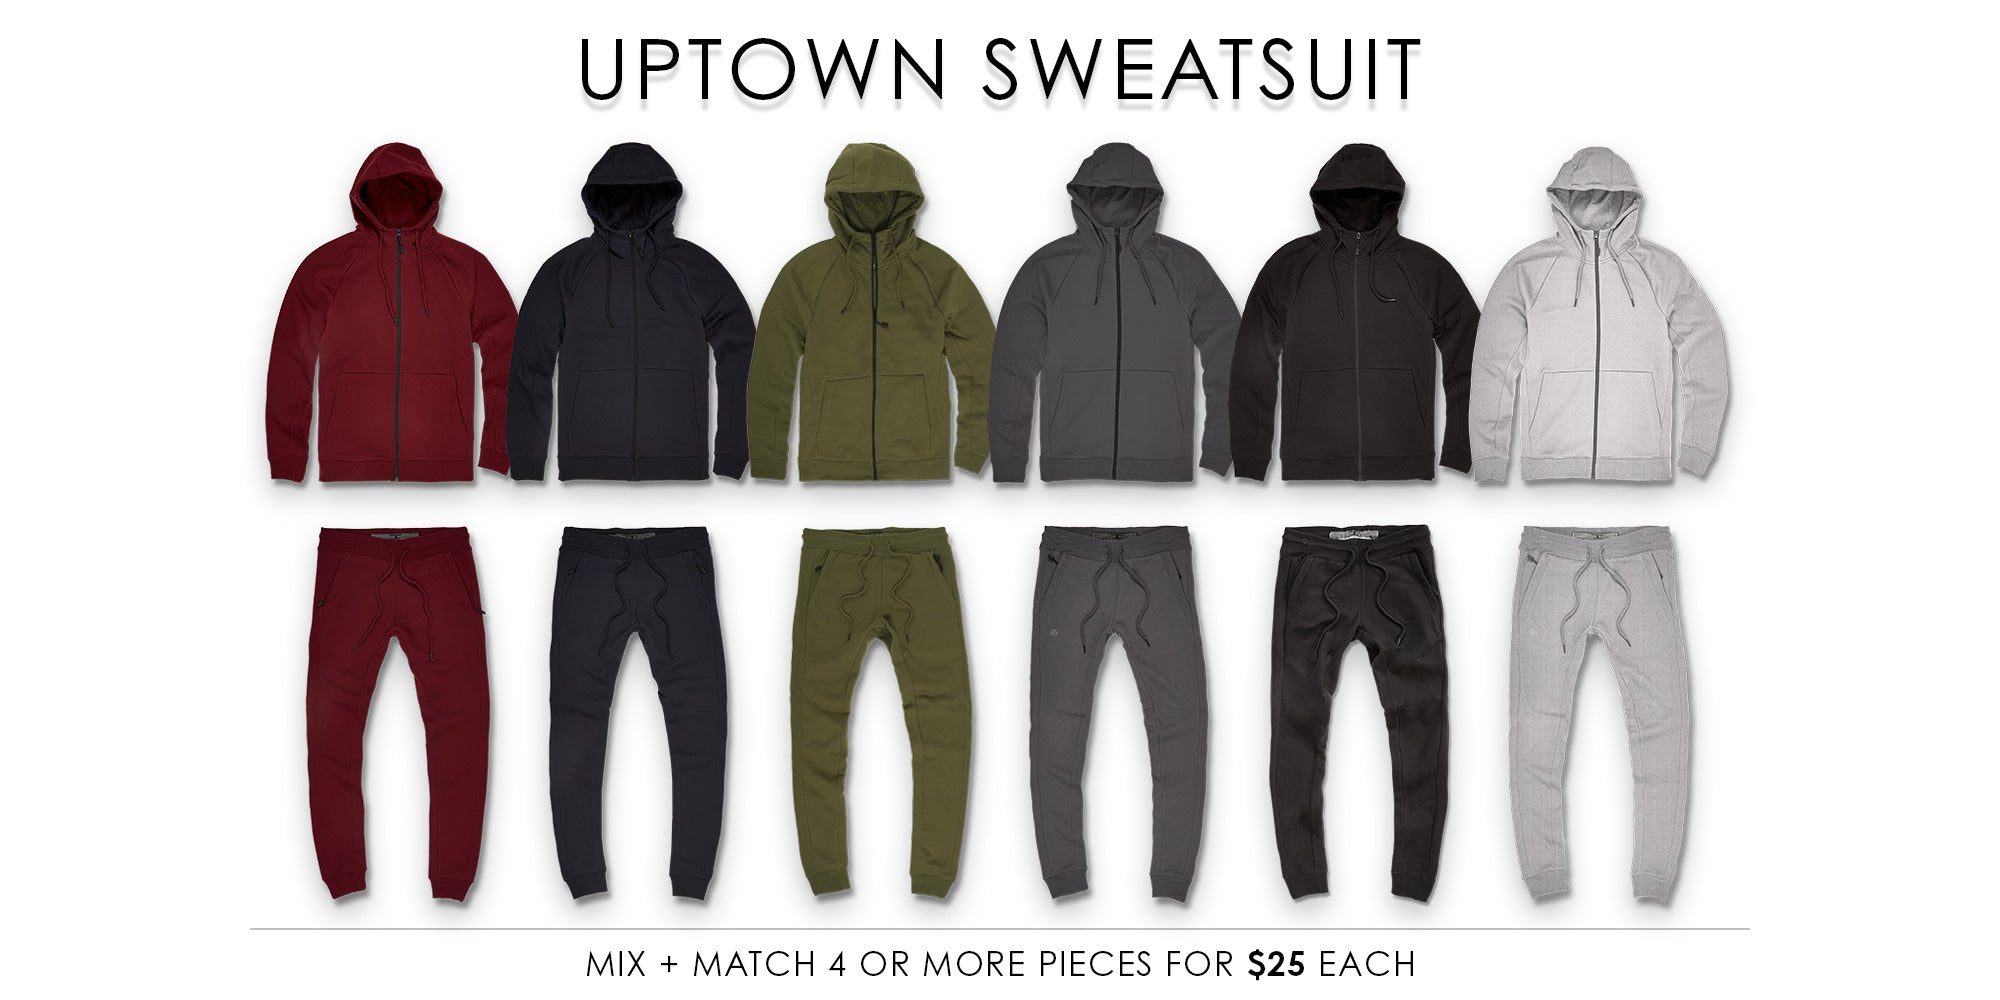 Uptown Sweatsuit Collection